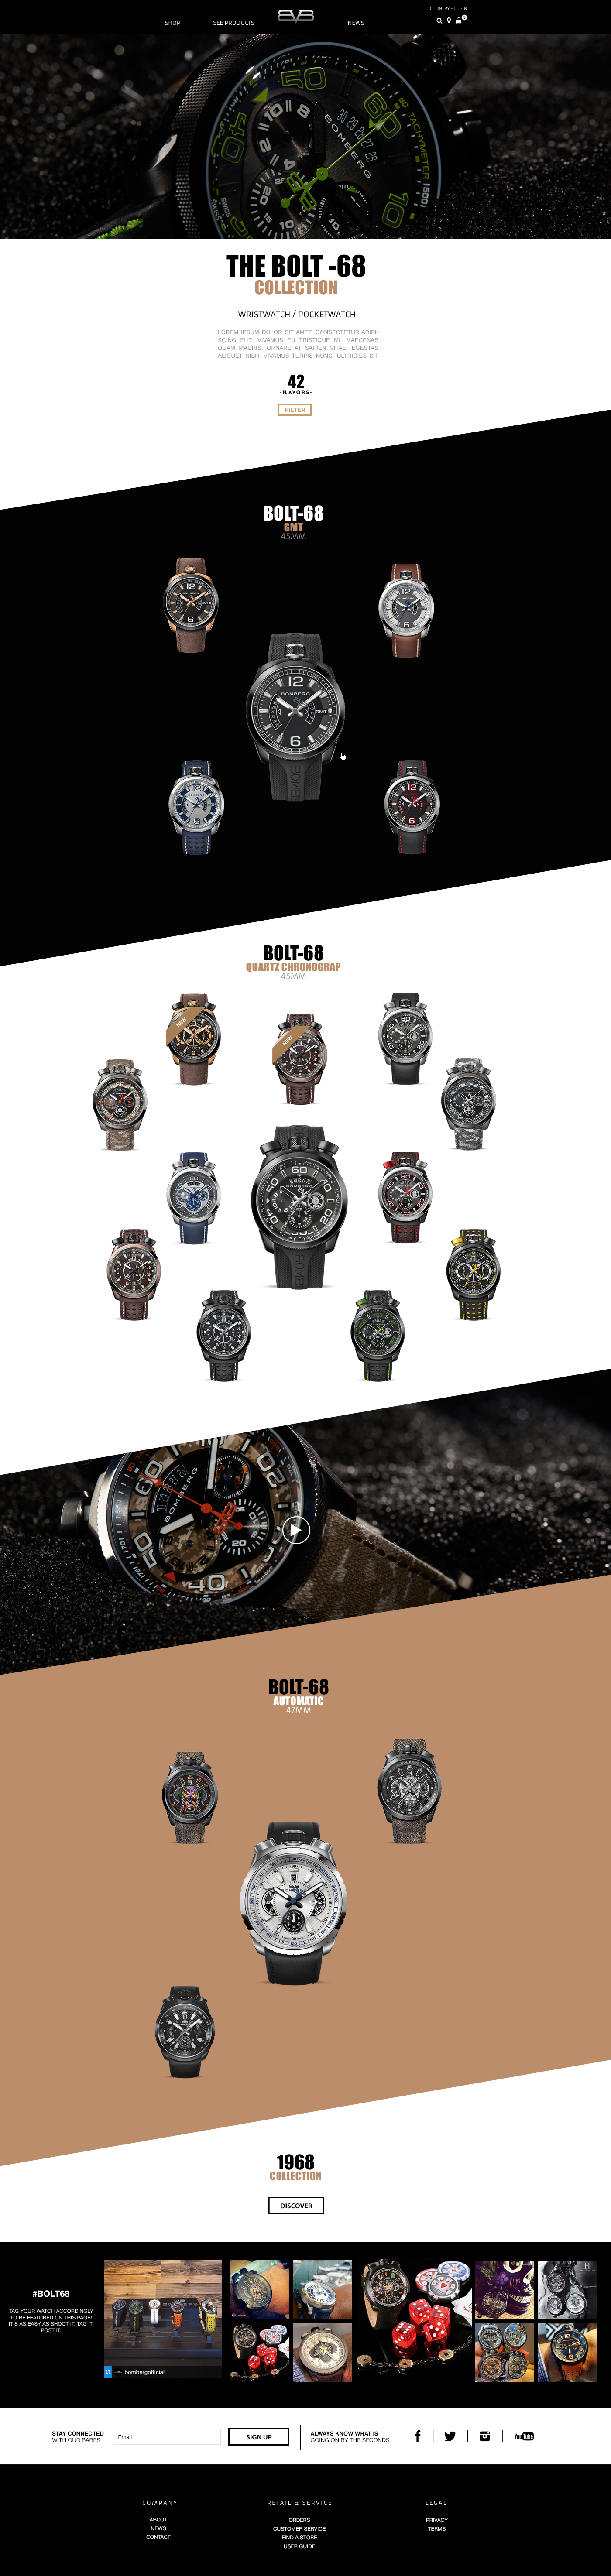 BOMBERG_PRODUCTLISTINGS_2